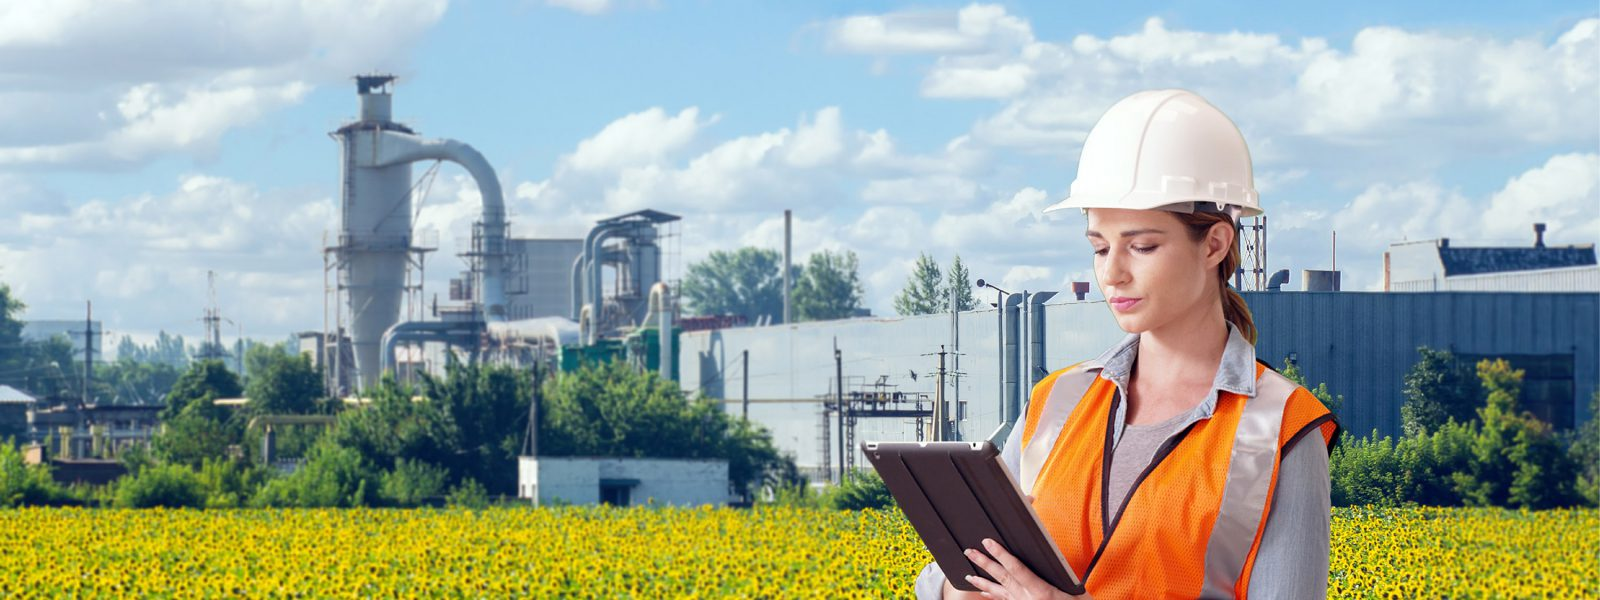 Mirsense, solutions for industries and gas analysis